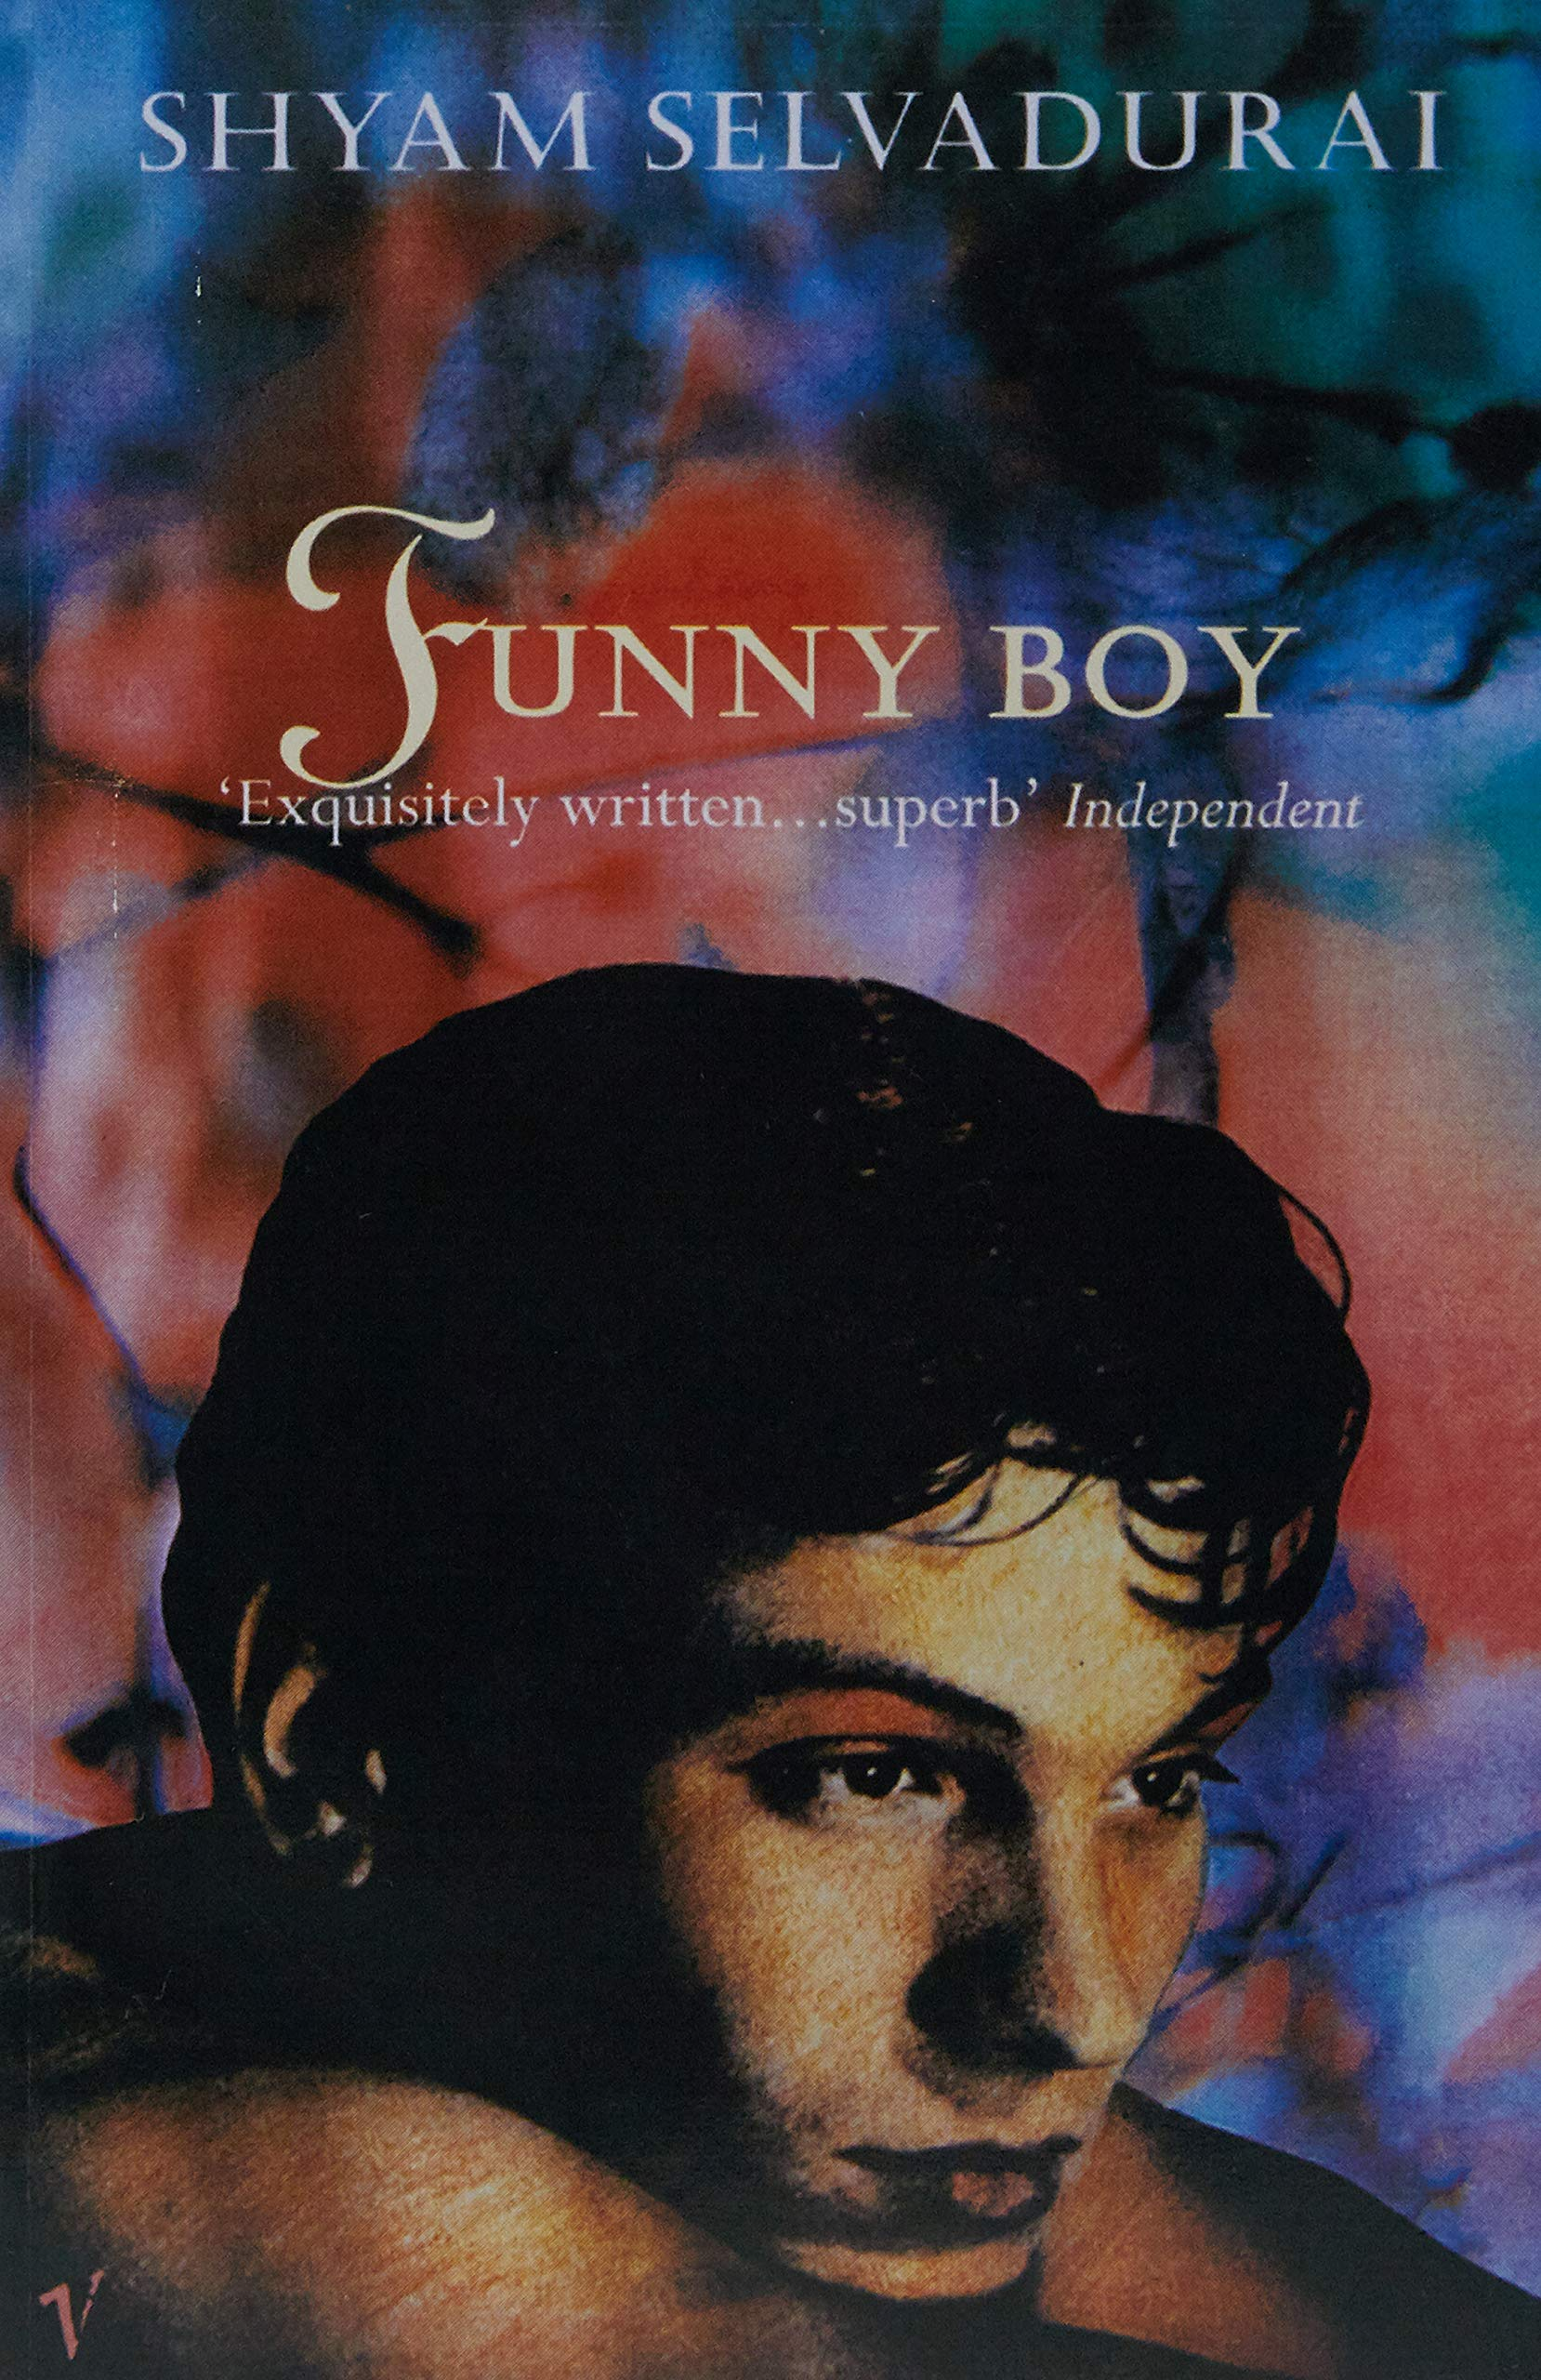 funny boy book cover